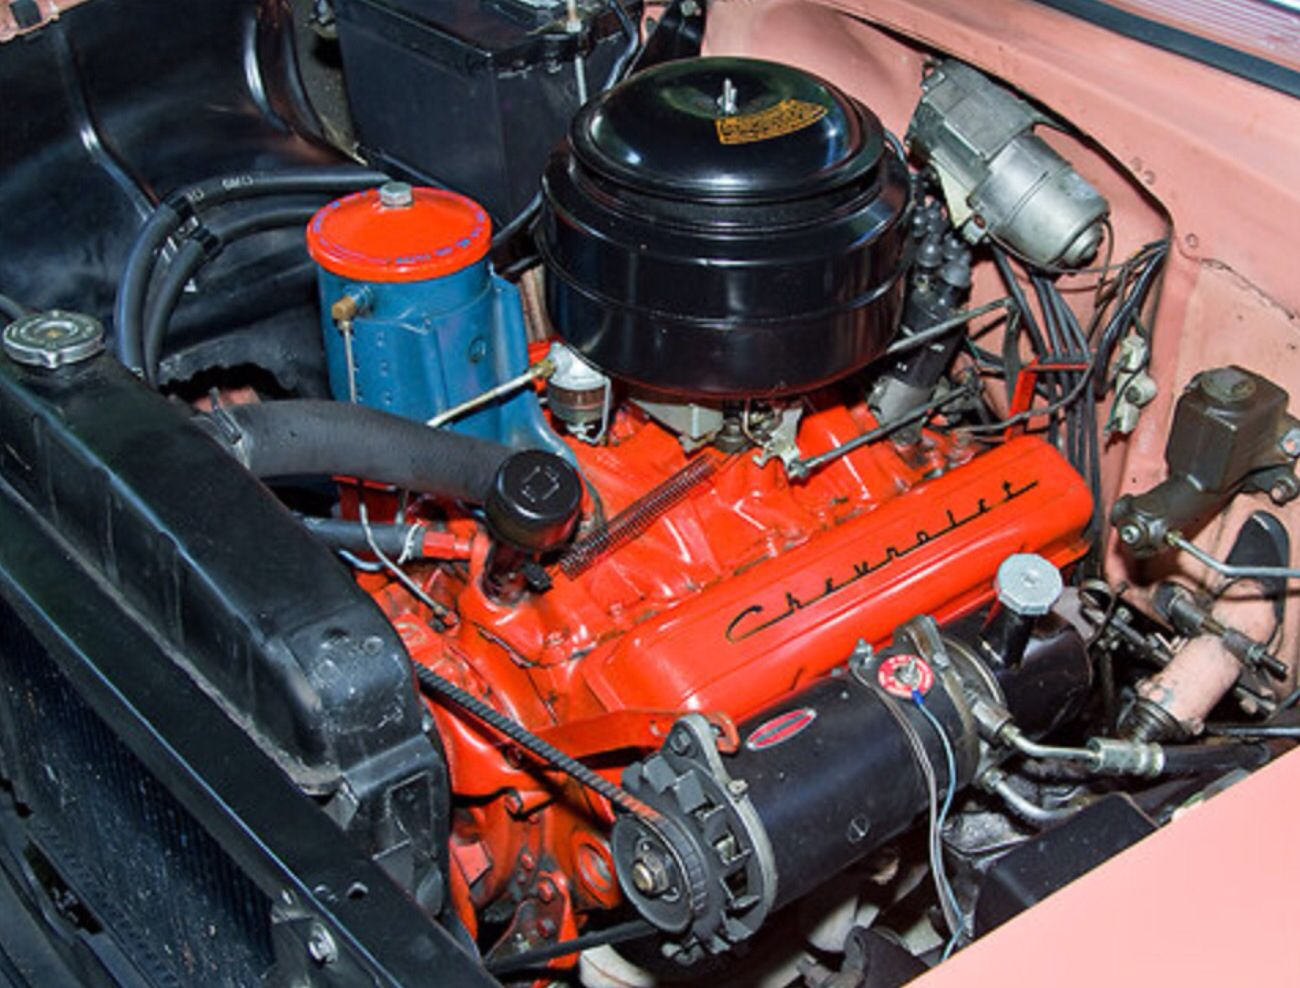 1955 Chevy 265 The Little Engine That Still Can Power Steering Pump Mounted On The Generator Easy To Change The Oil Filter Ev 1955 Chevy Chevy 55 Chevy